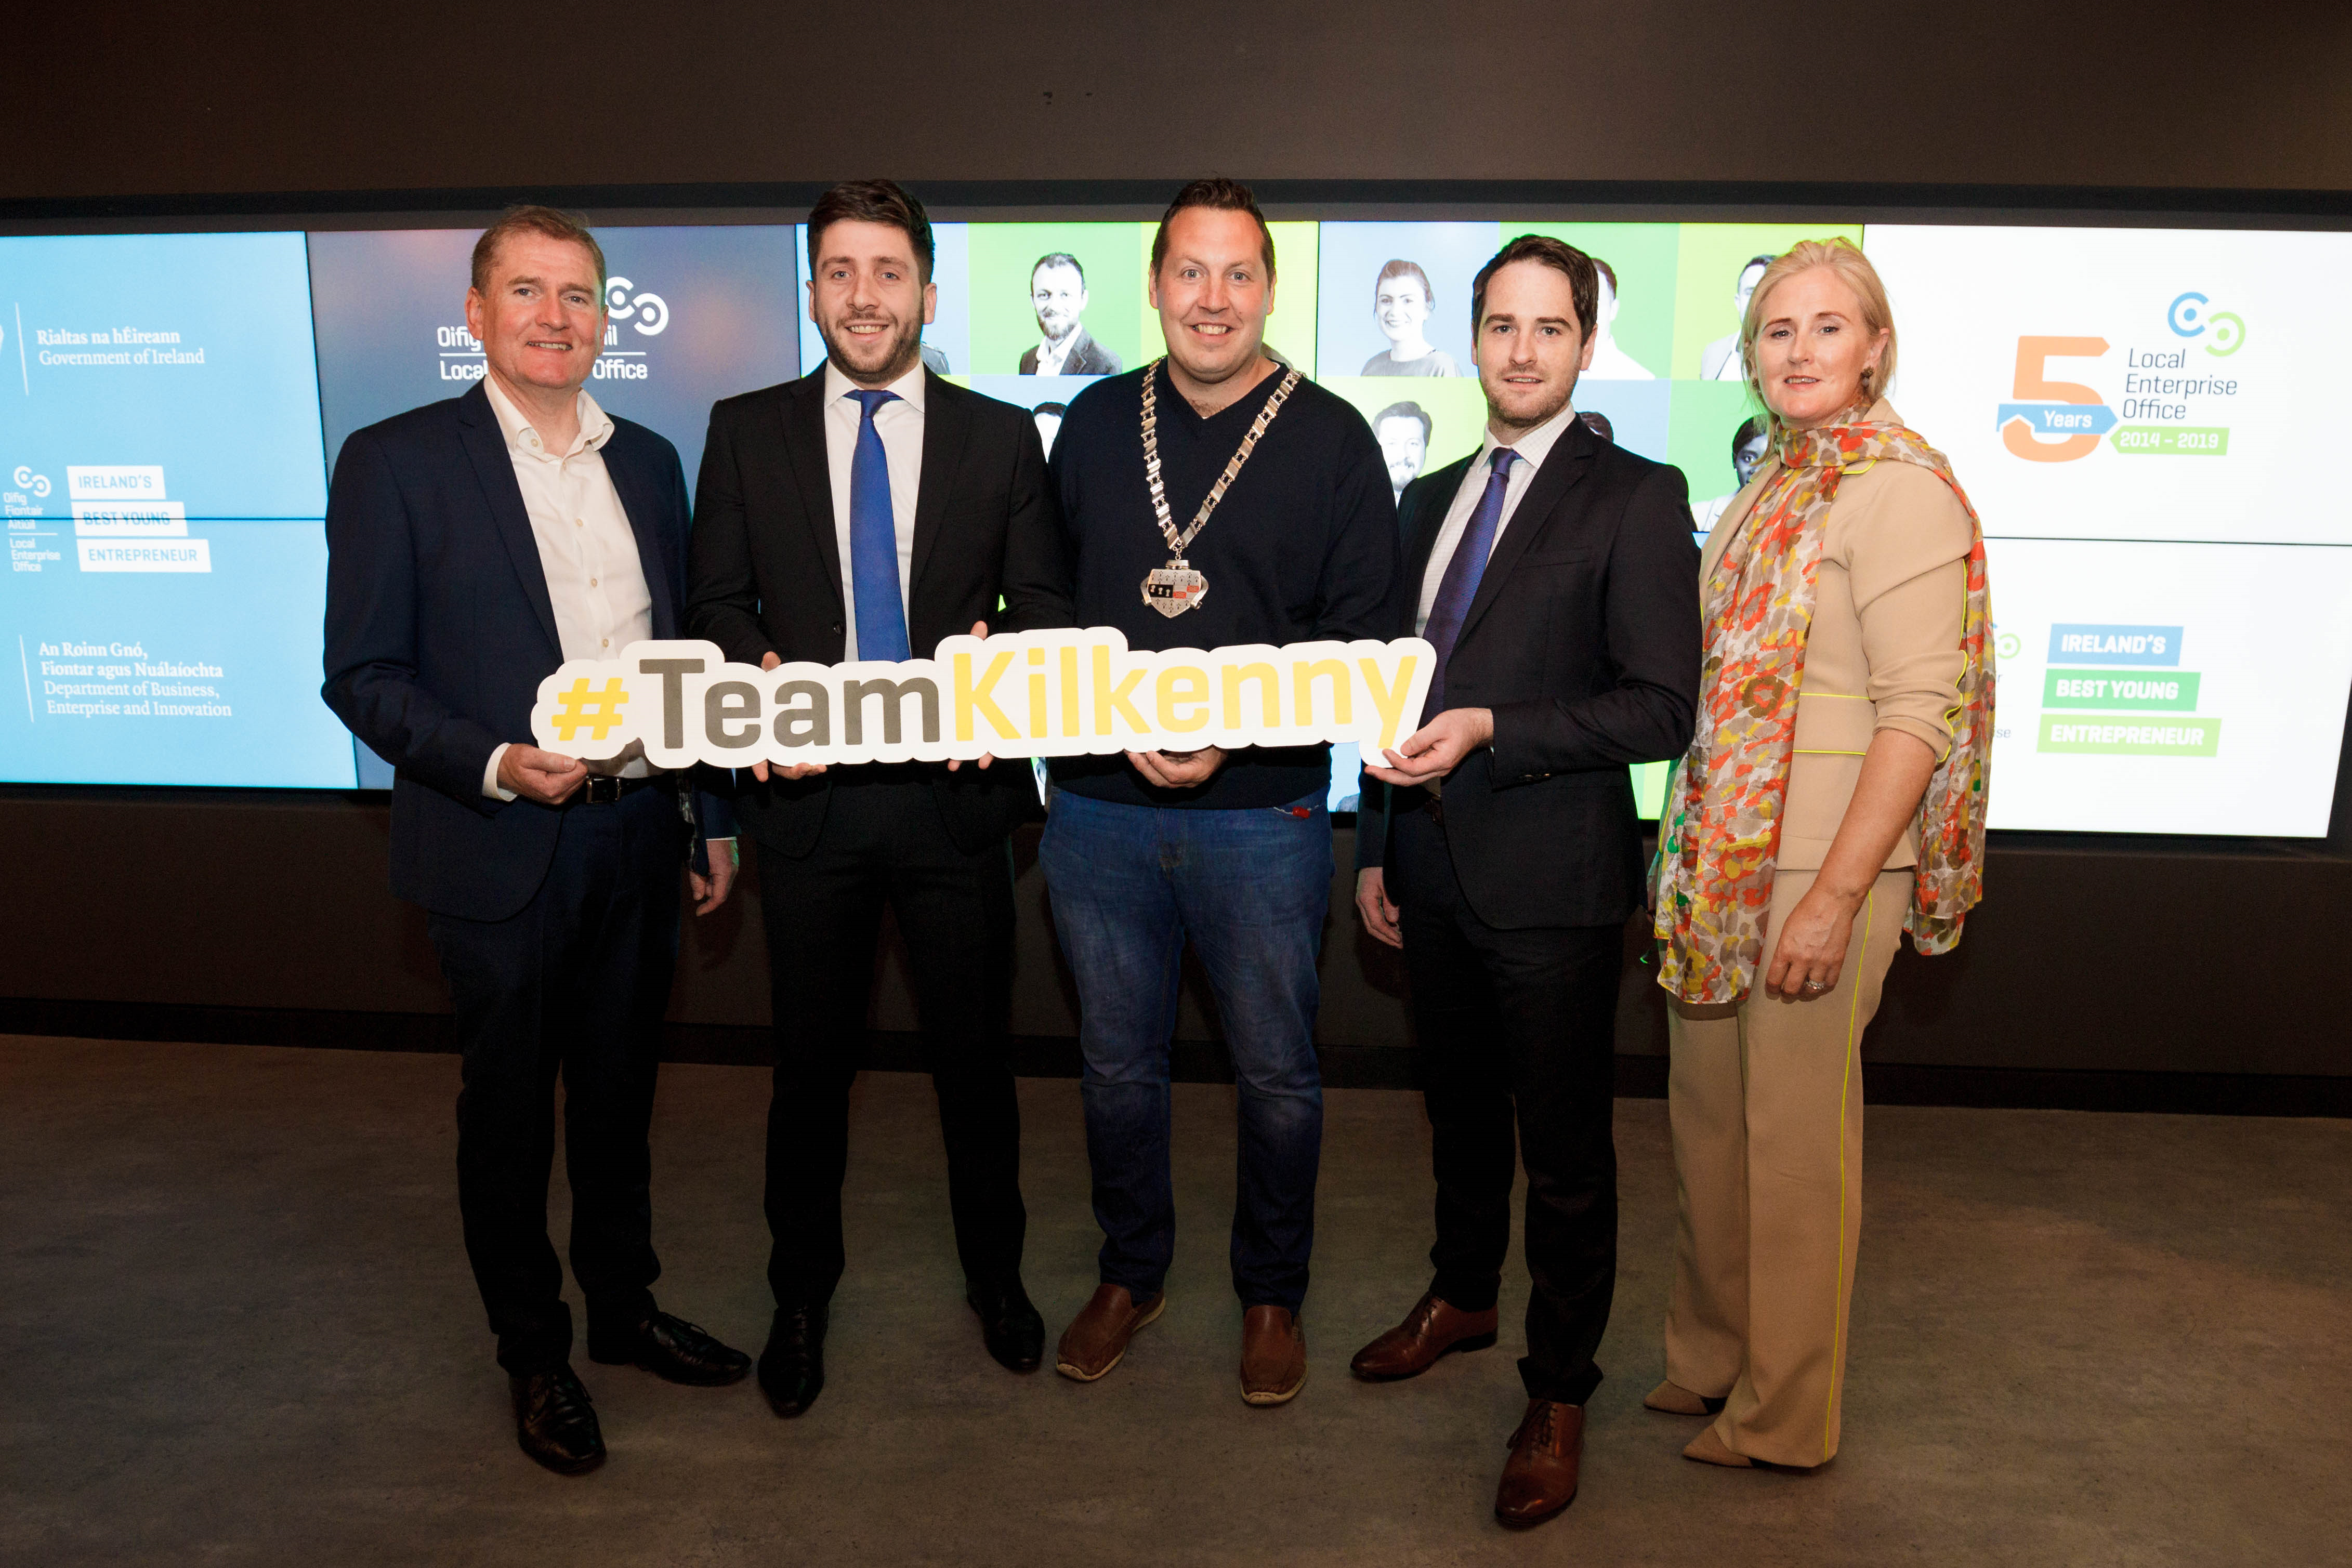 National Final of Ireland's Best Young Entrepreneur